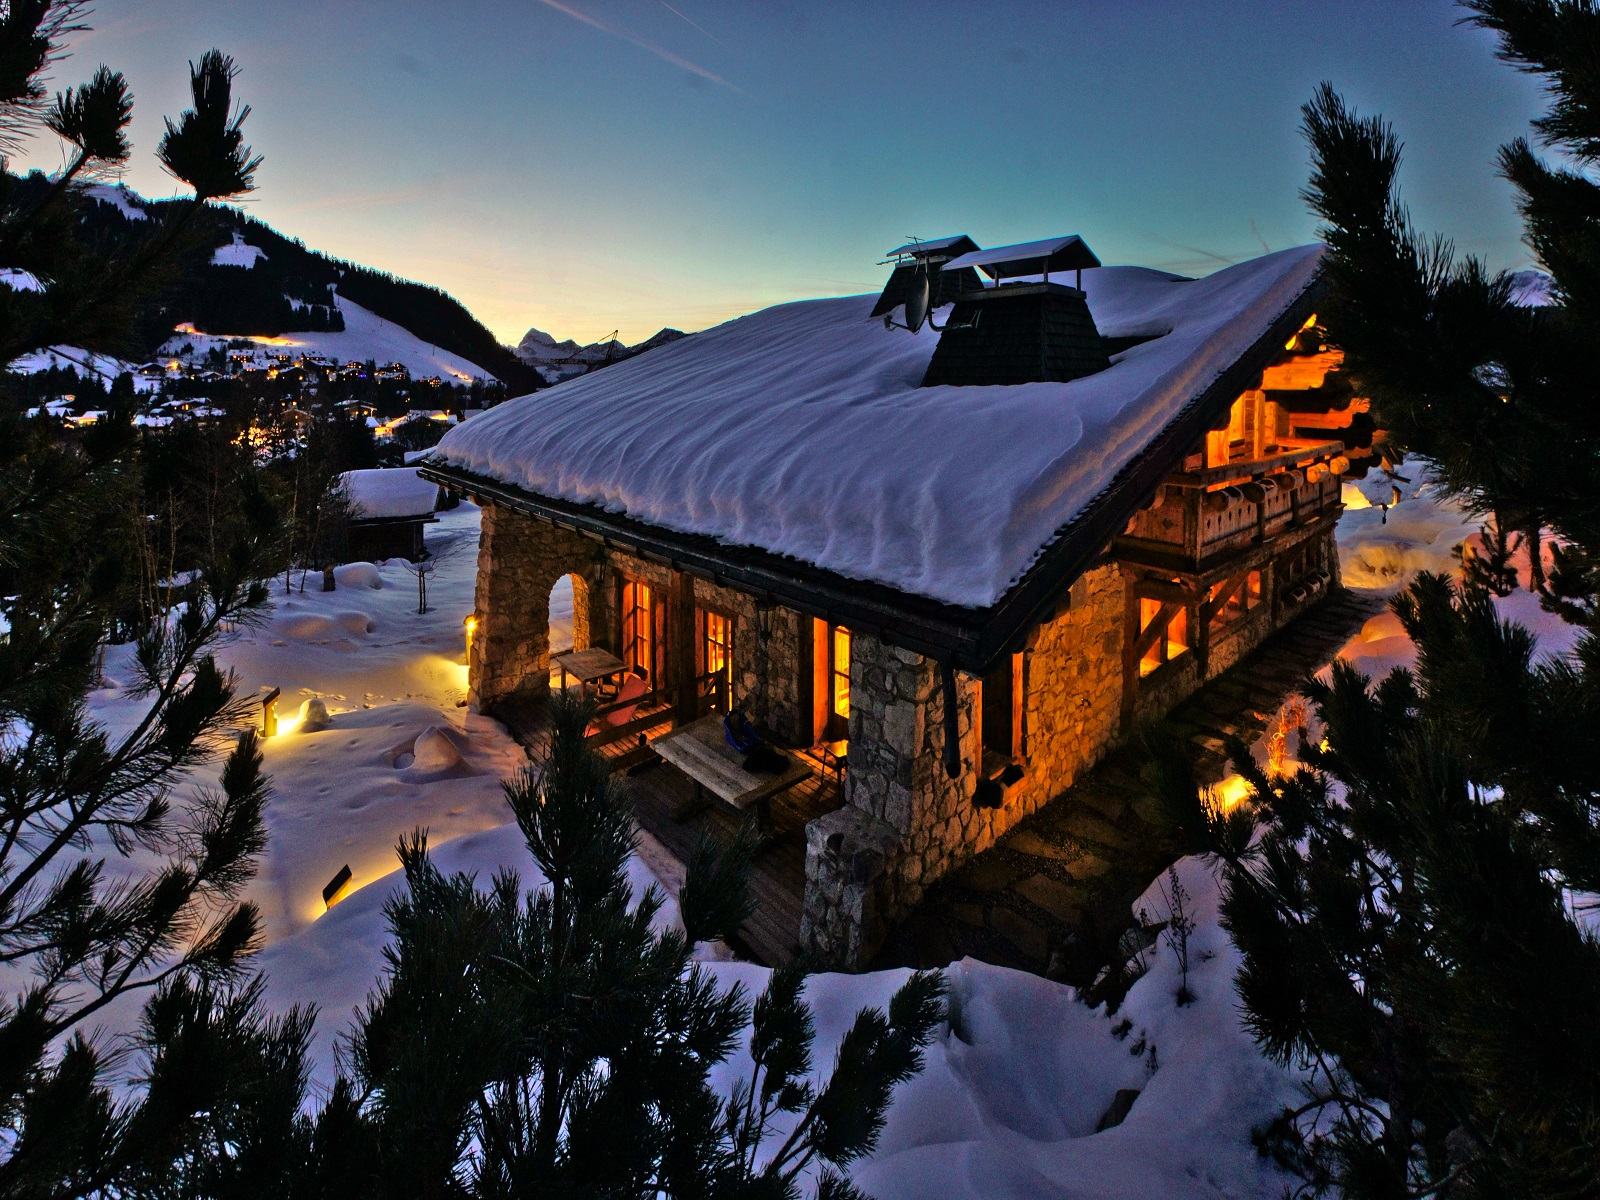 Single Family Home for Sale at Chalet OPALE Megeve, Rhone-Alpes 74120 France